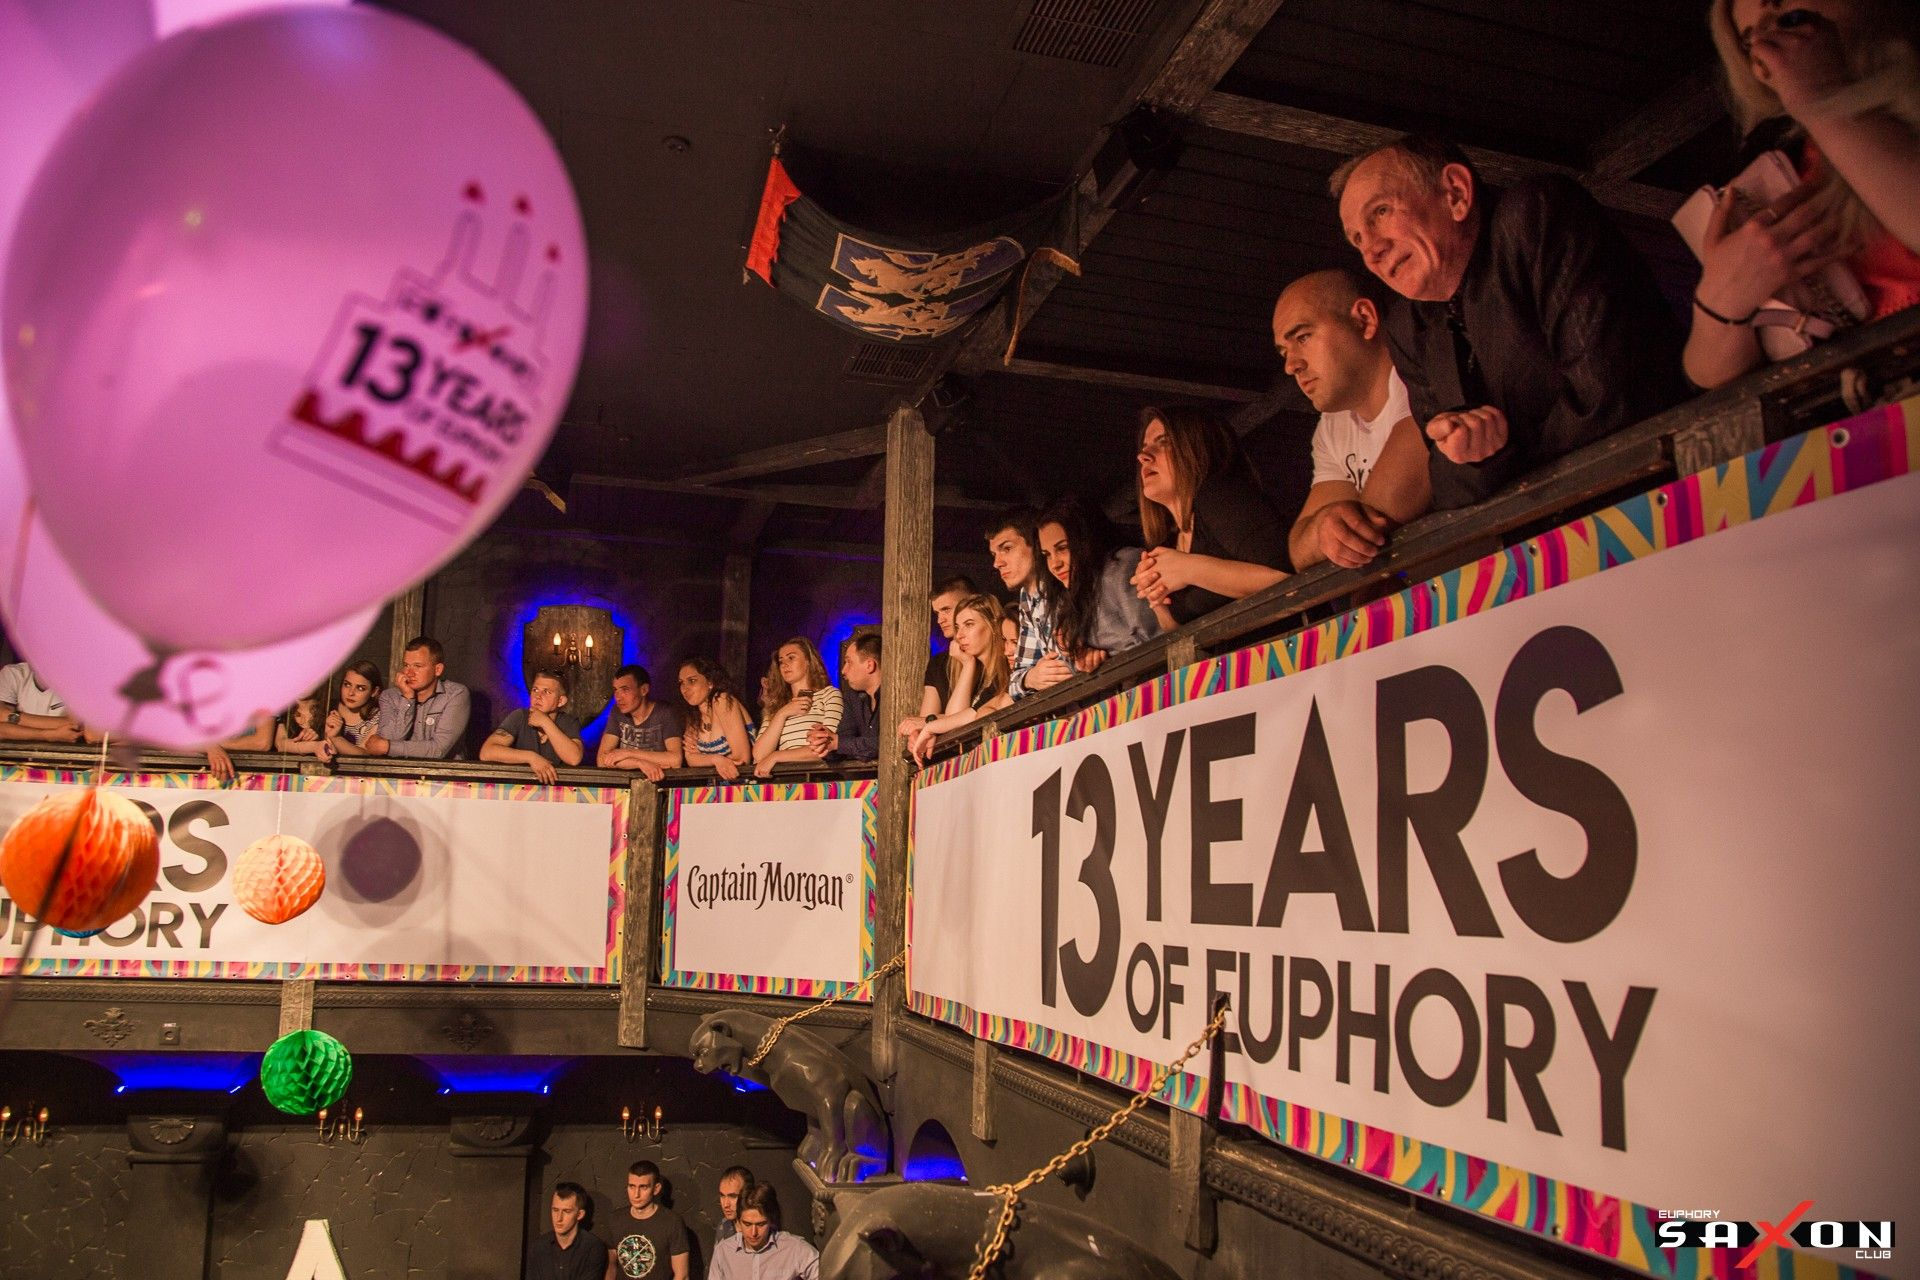 Вечеринка «13 Years Of Euphory» в клубе «Saxon»